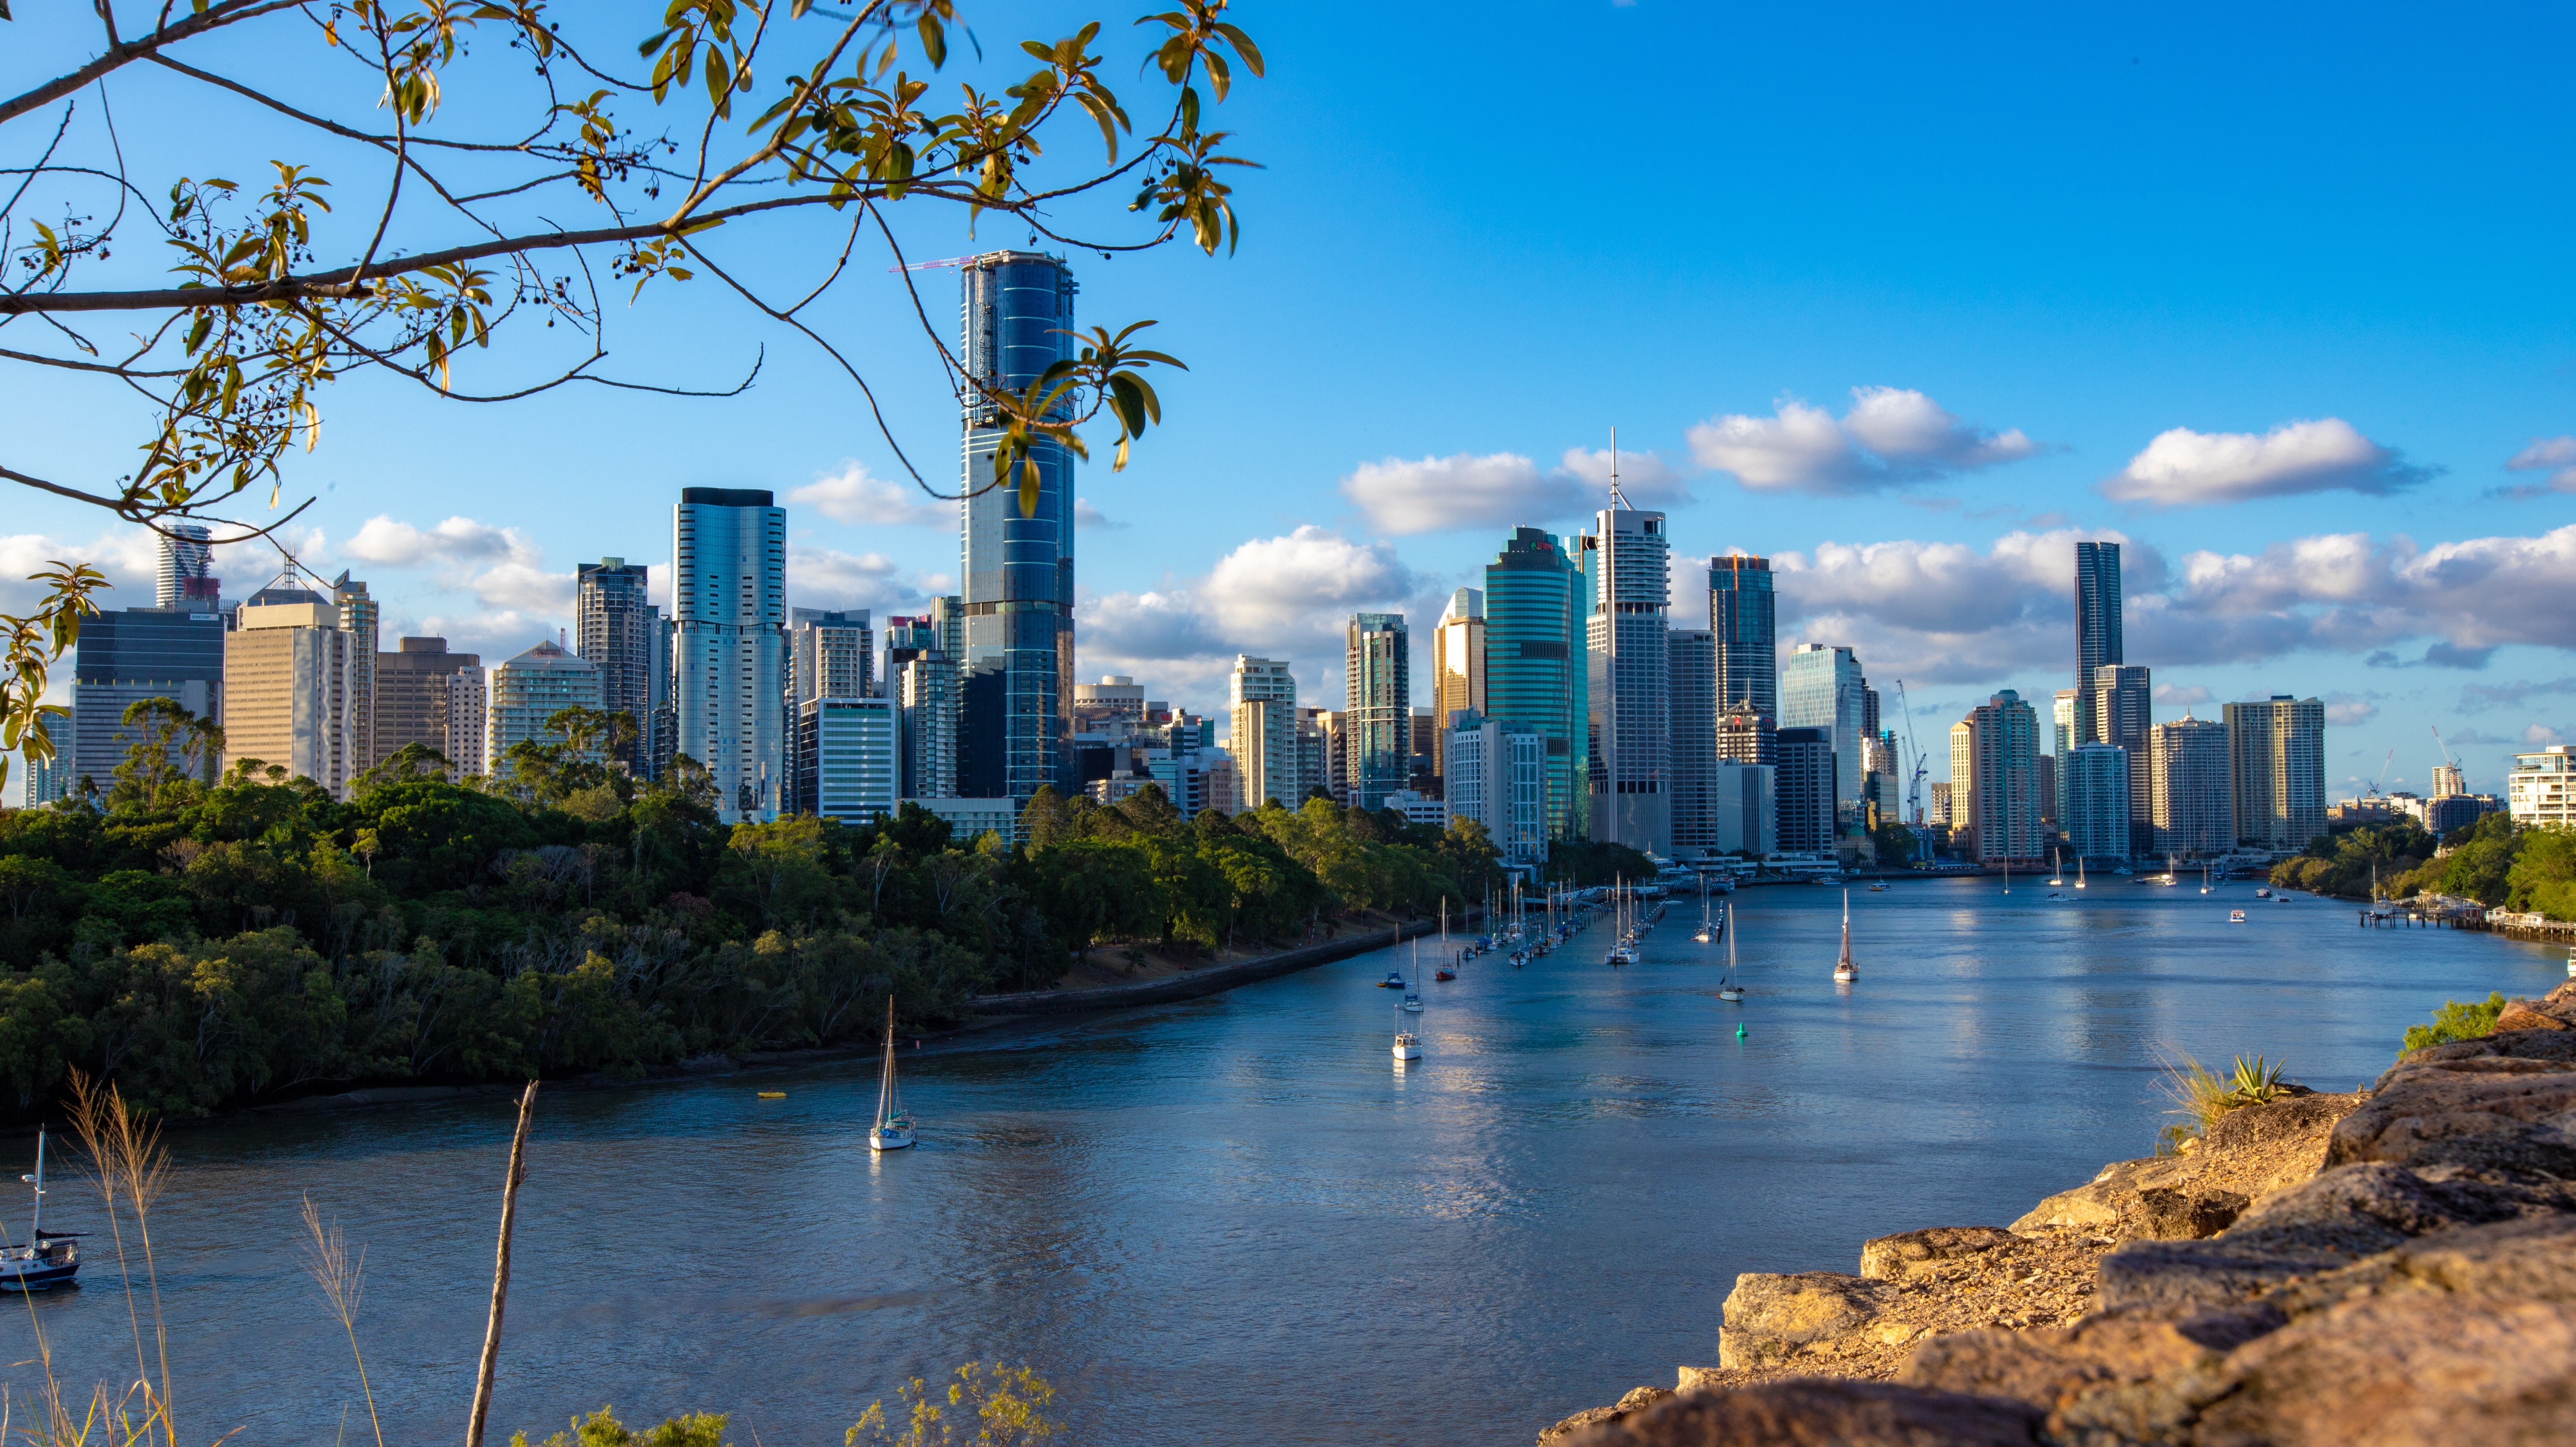 brisbane-local-marketing-1328234-unsplash